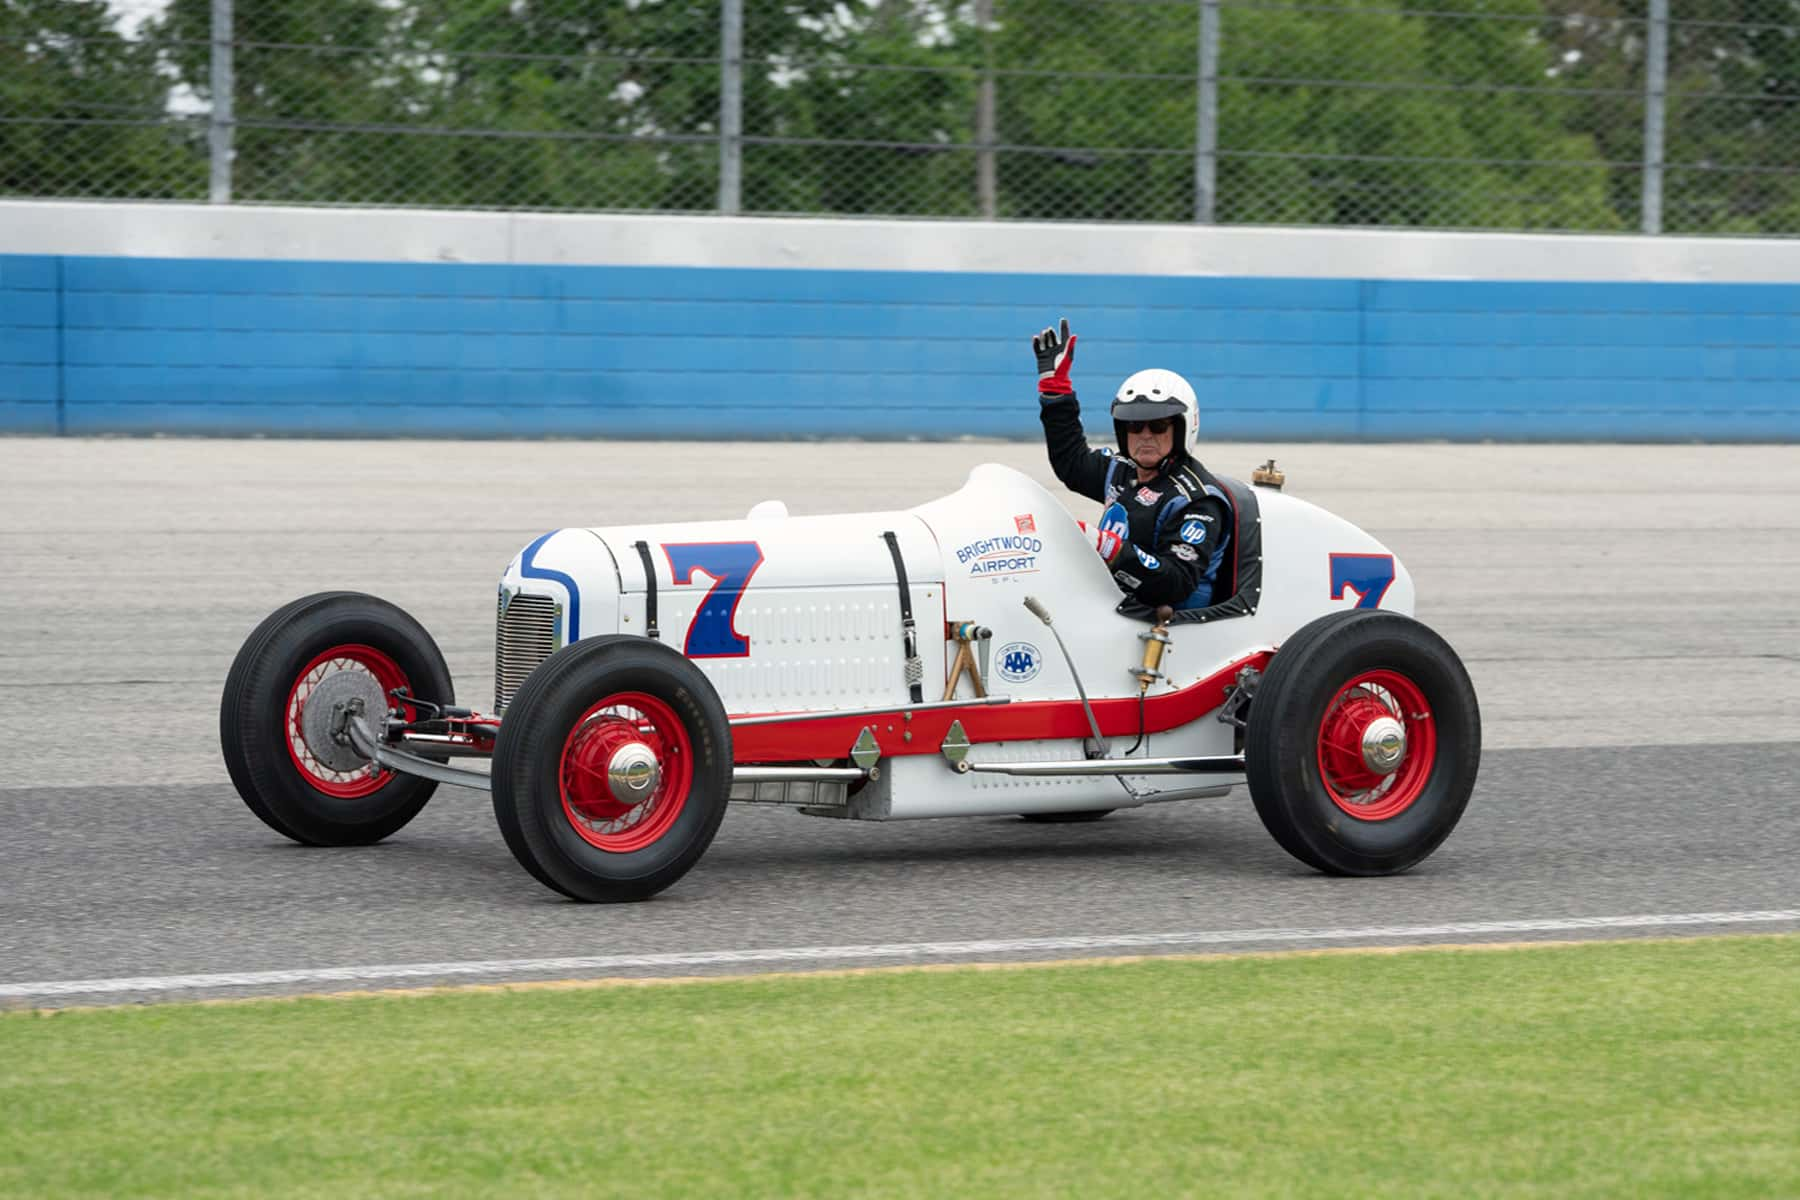 07_062019_milwaukeemile_012